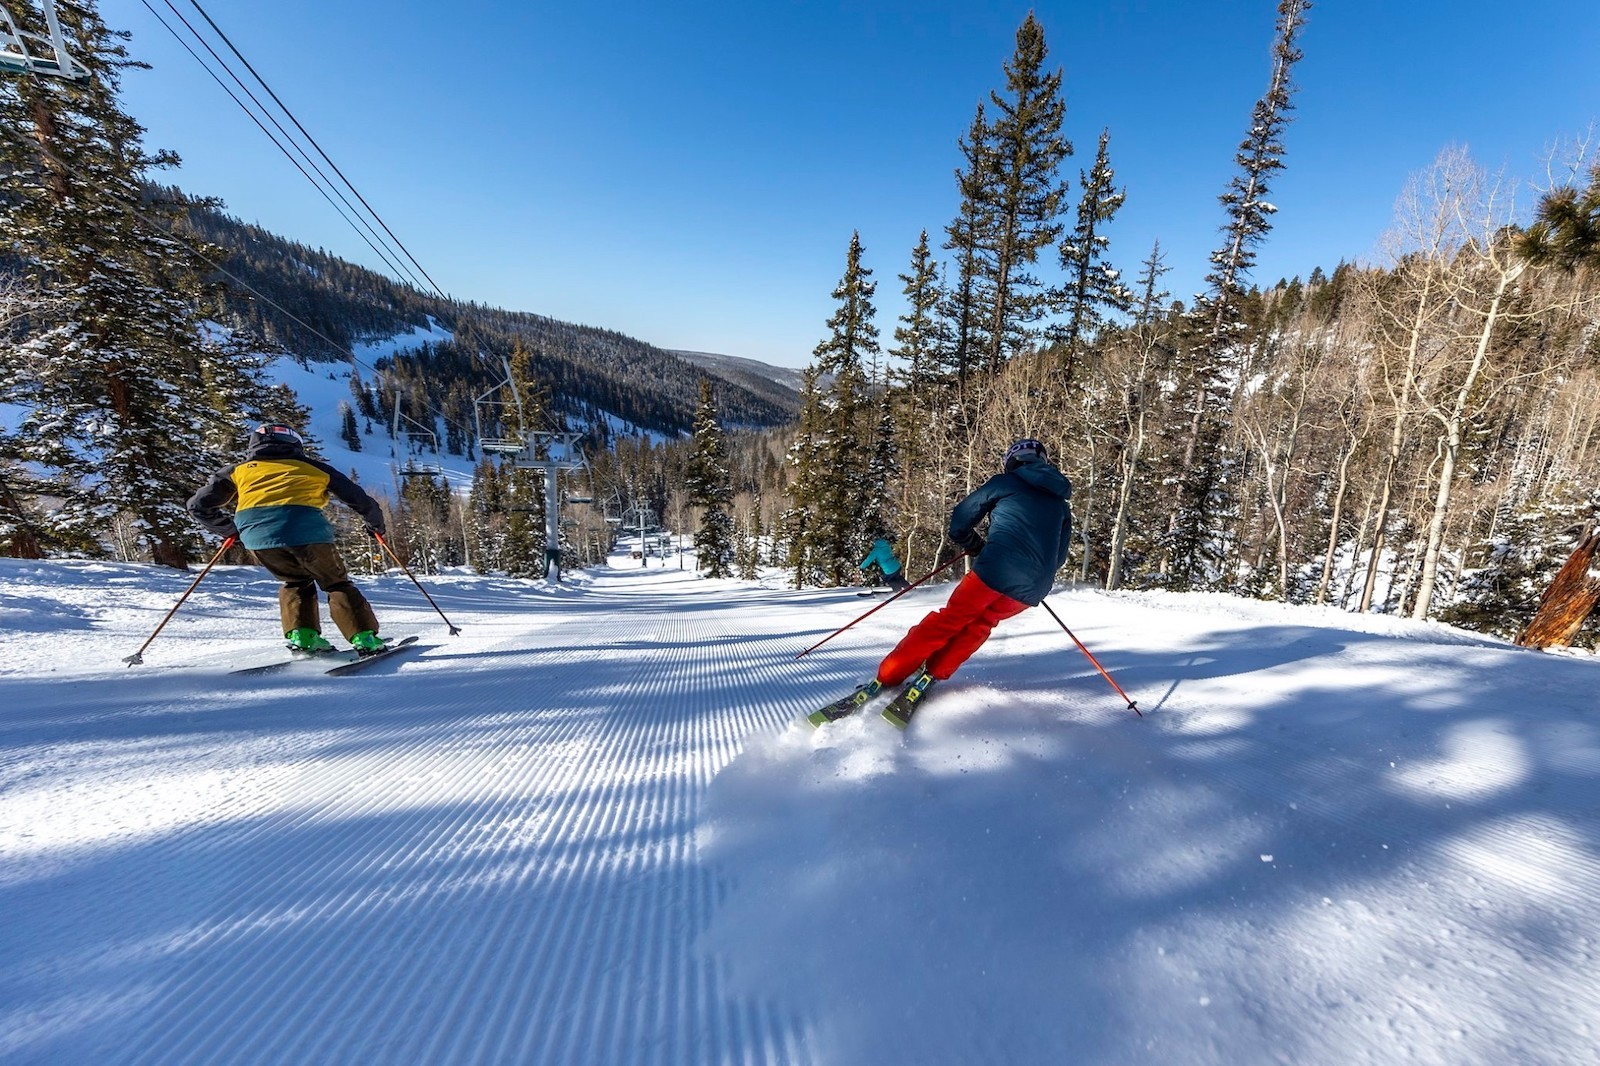 Image of two skiers going down the slope at Eagle Point Resort in Utah